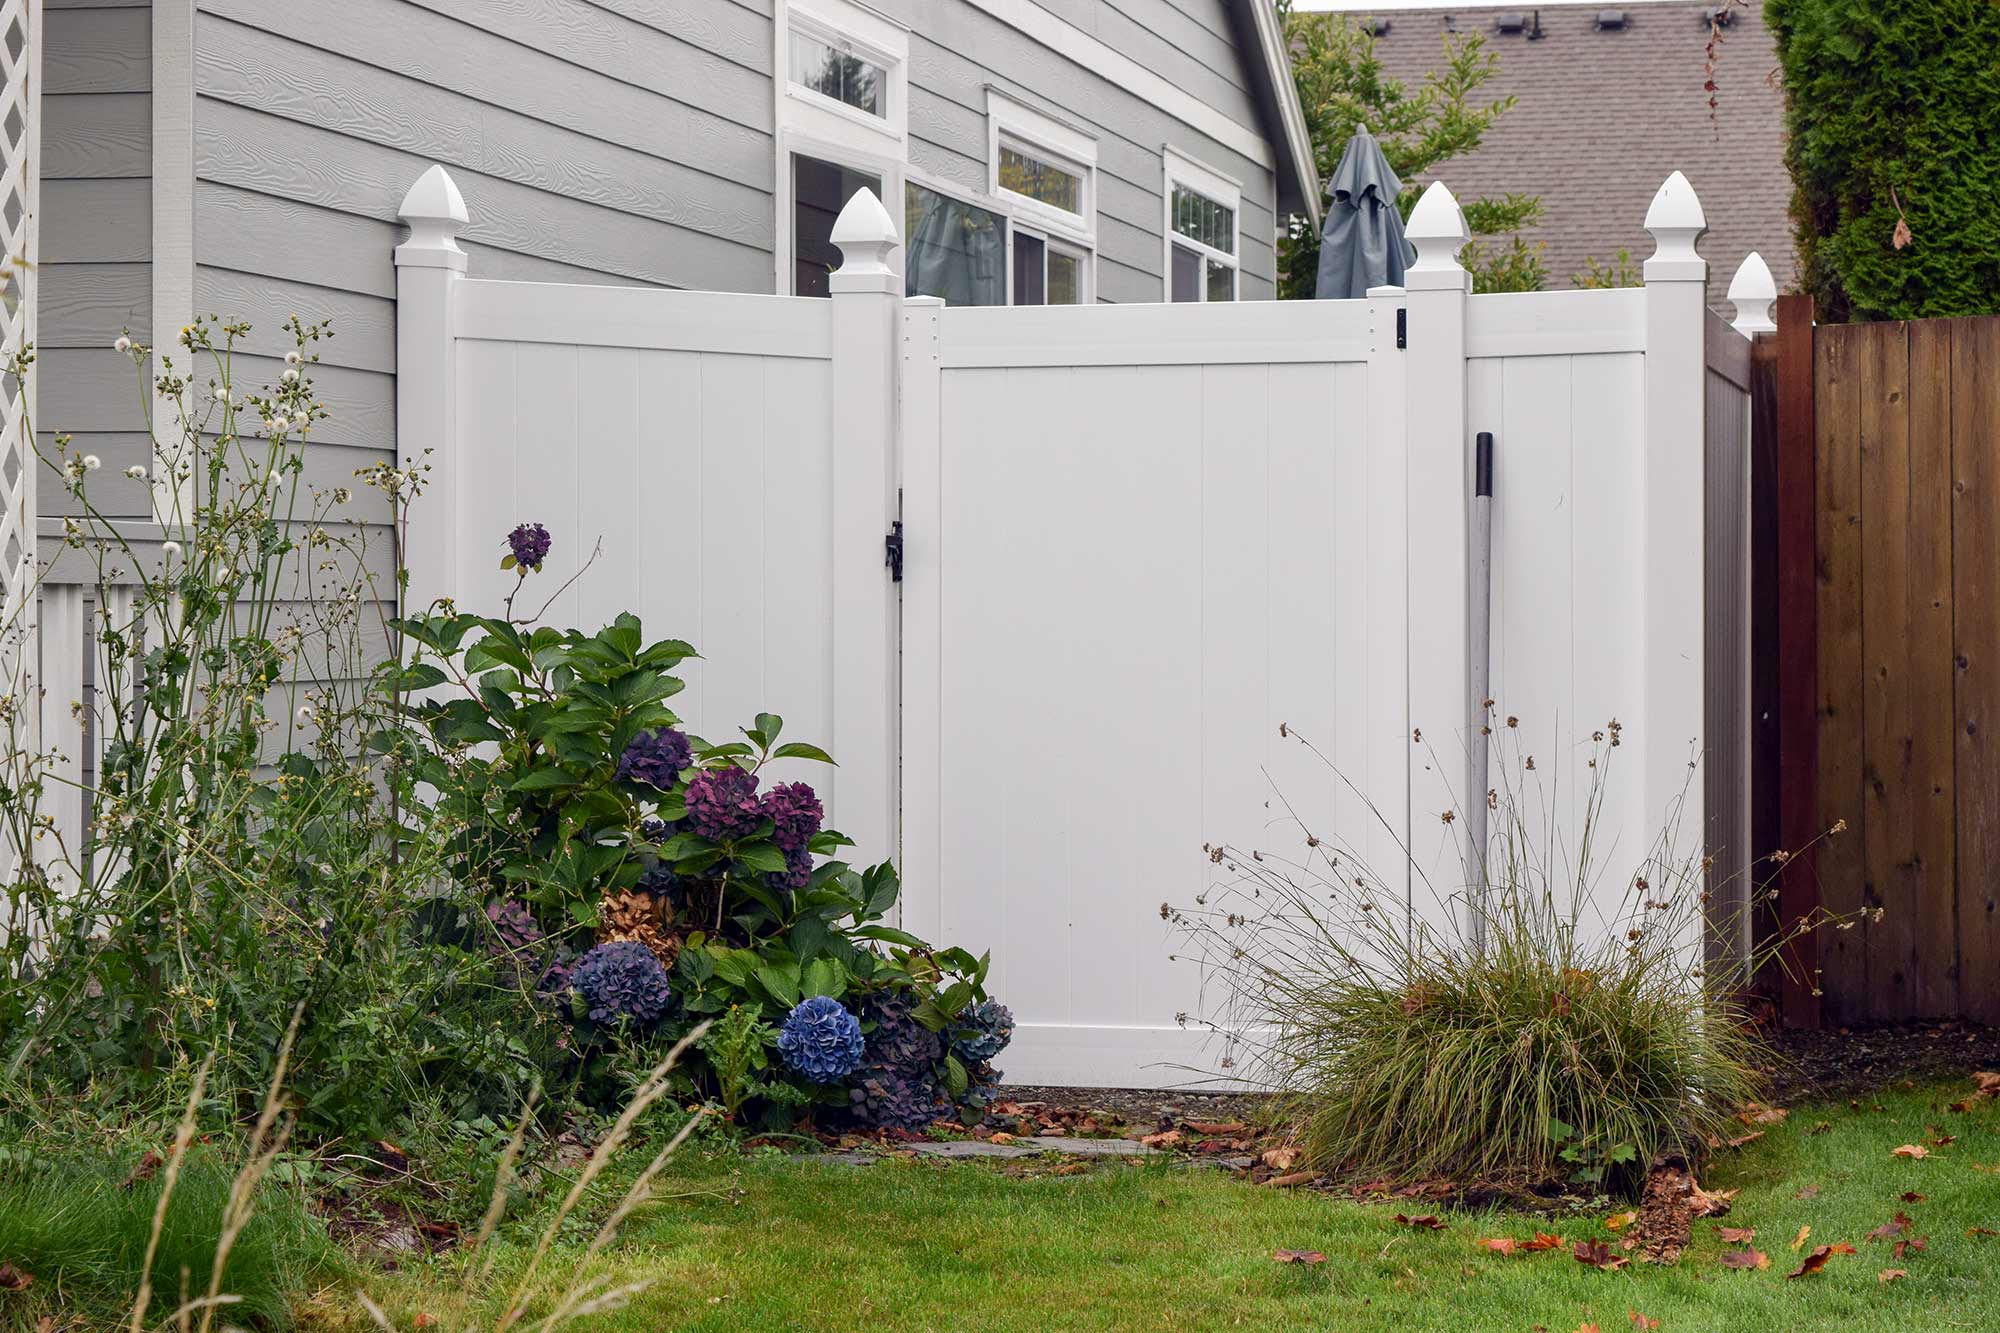 Vinyl fence example in Dupont. Vinyl fences are easy to maintain and come in a variety of colors.